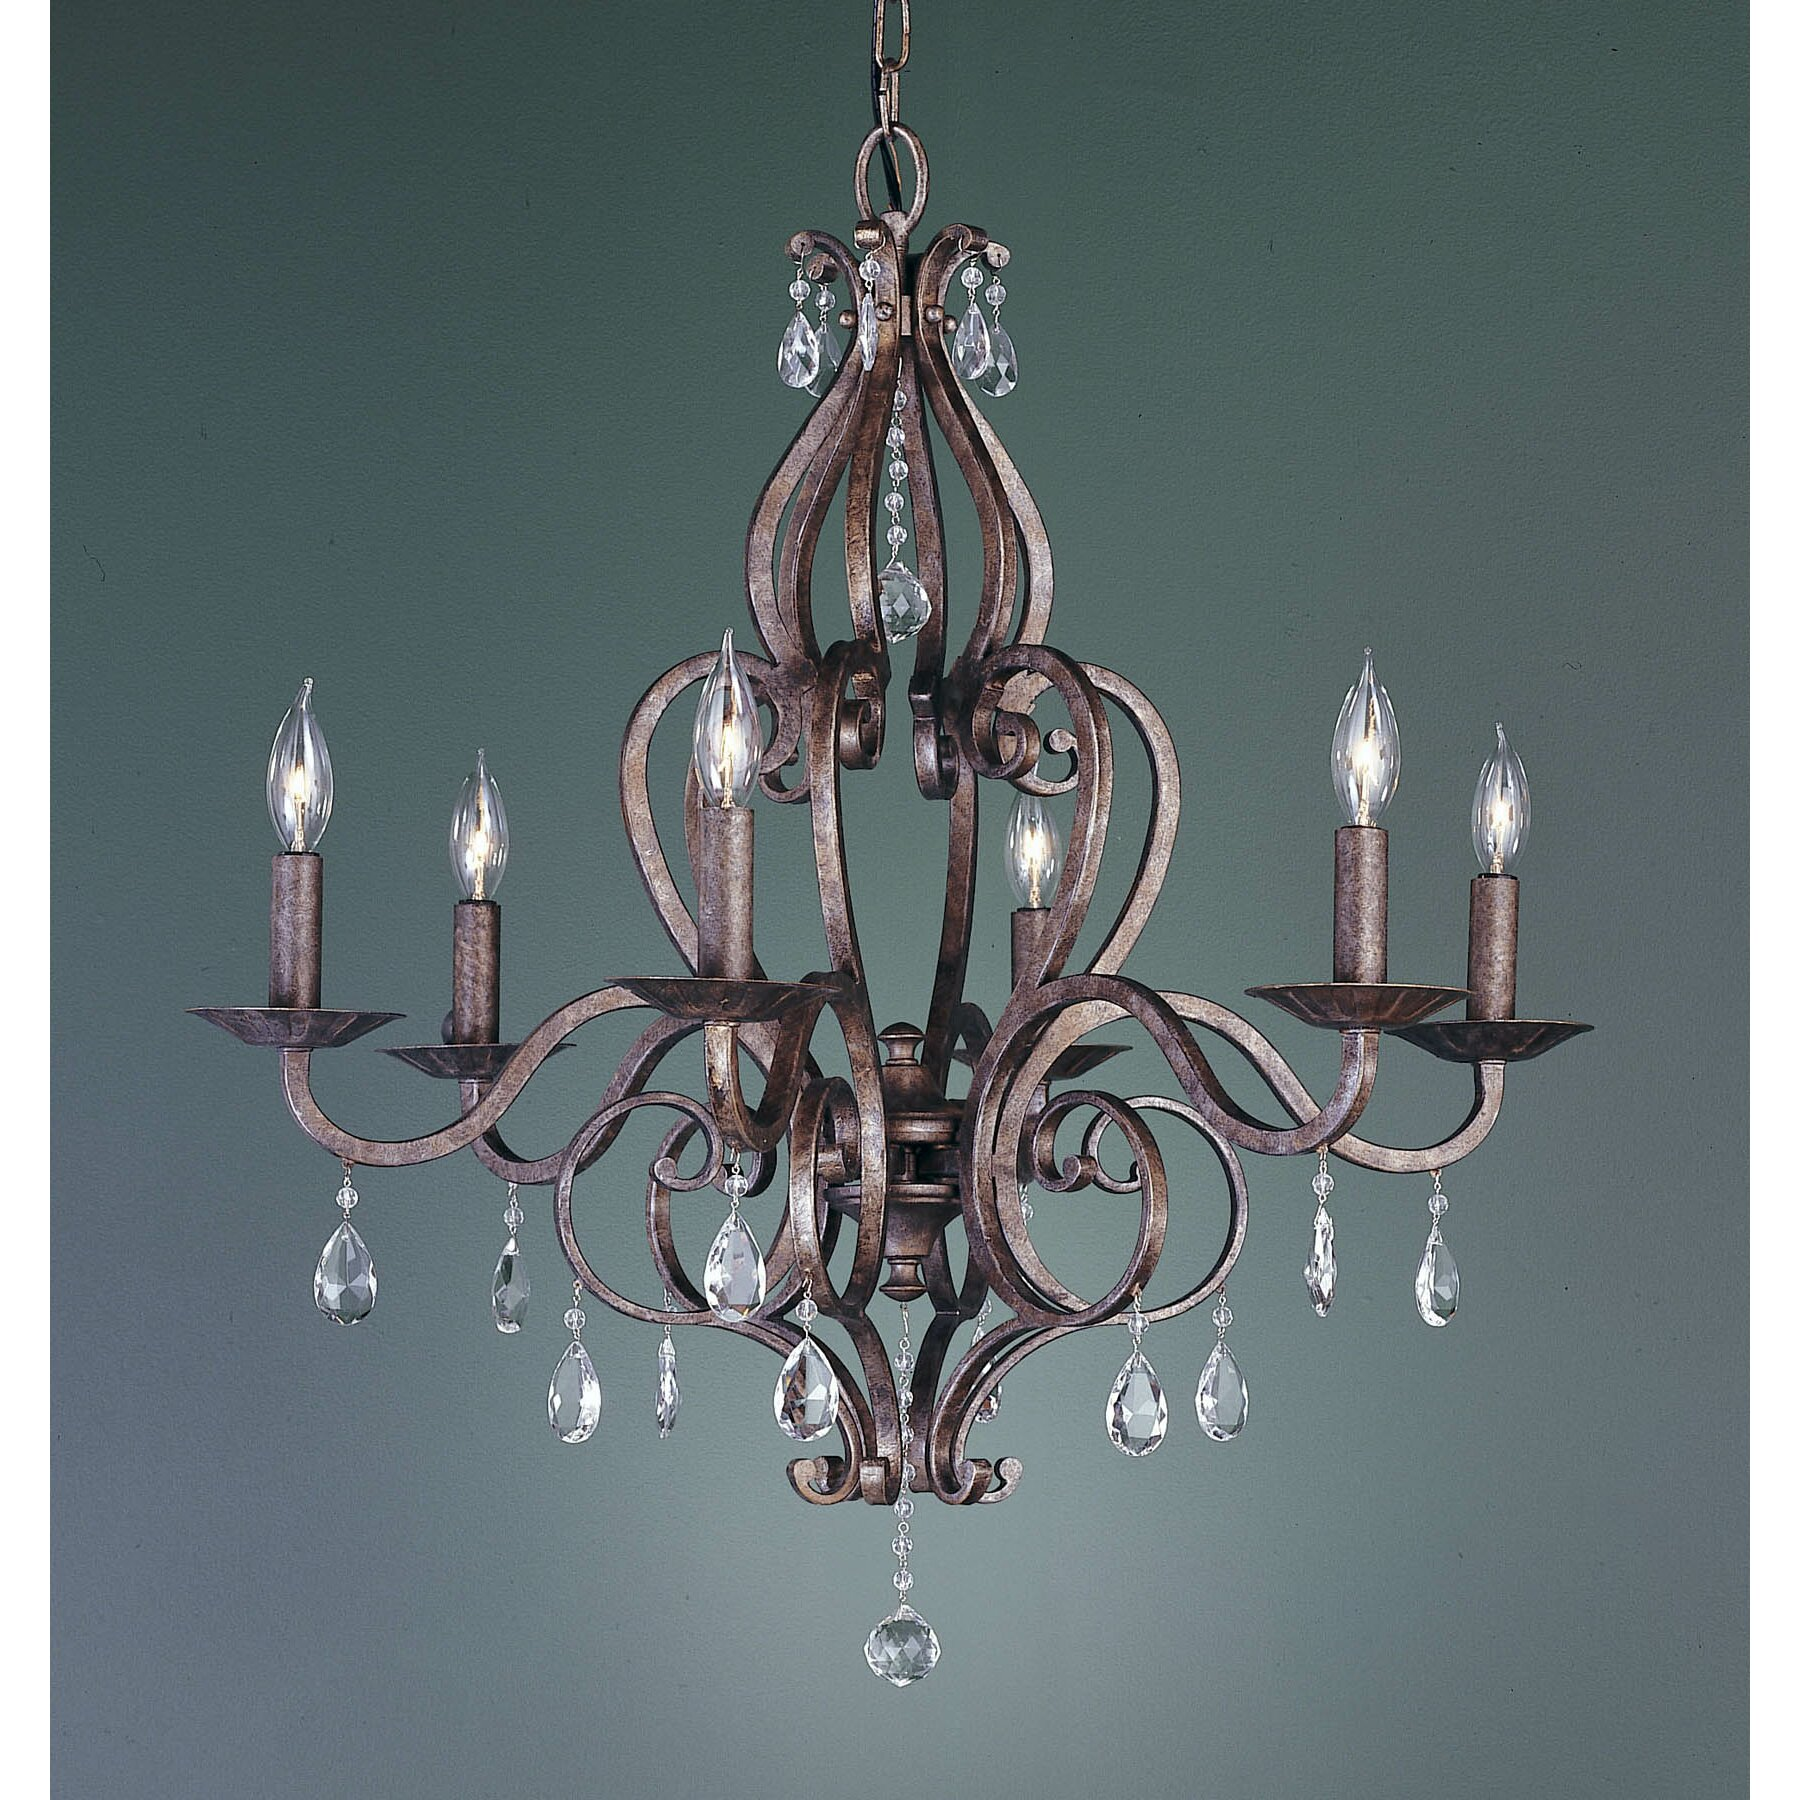 Wayfair Chandelier: Mademoiselle 6 Light Chandelier